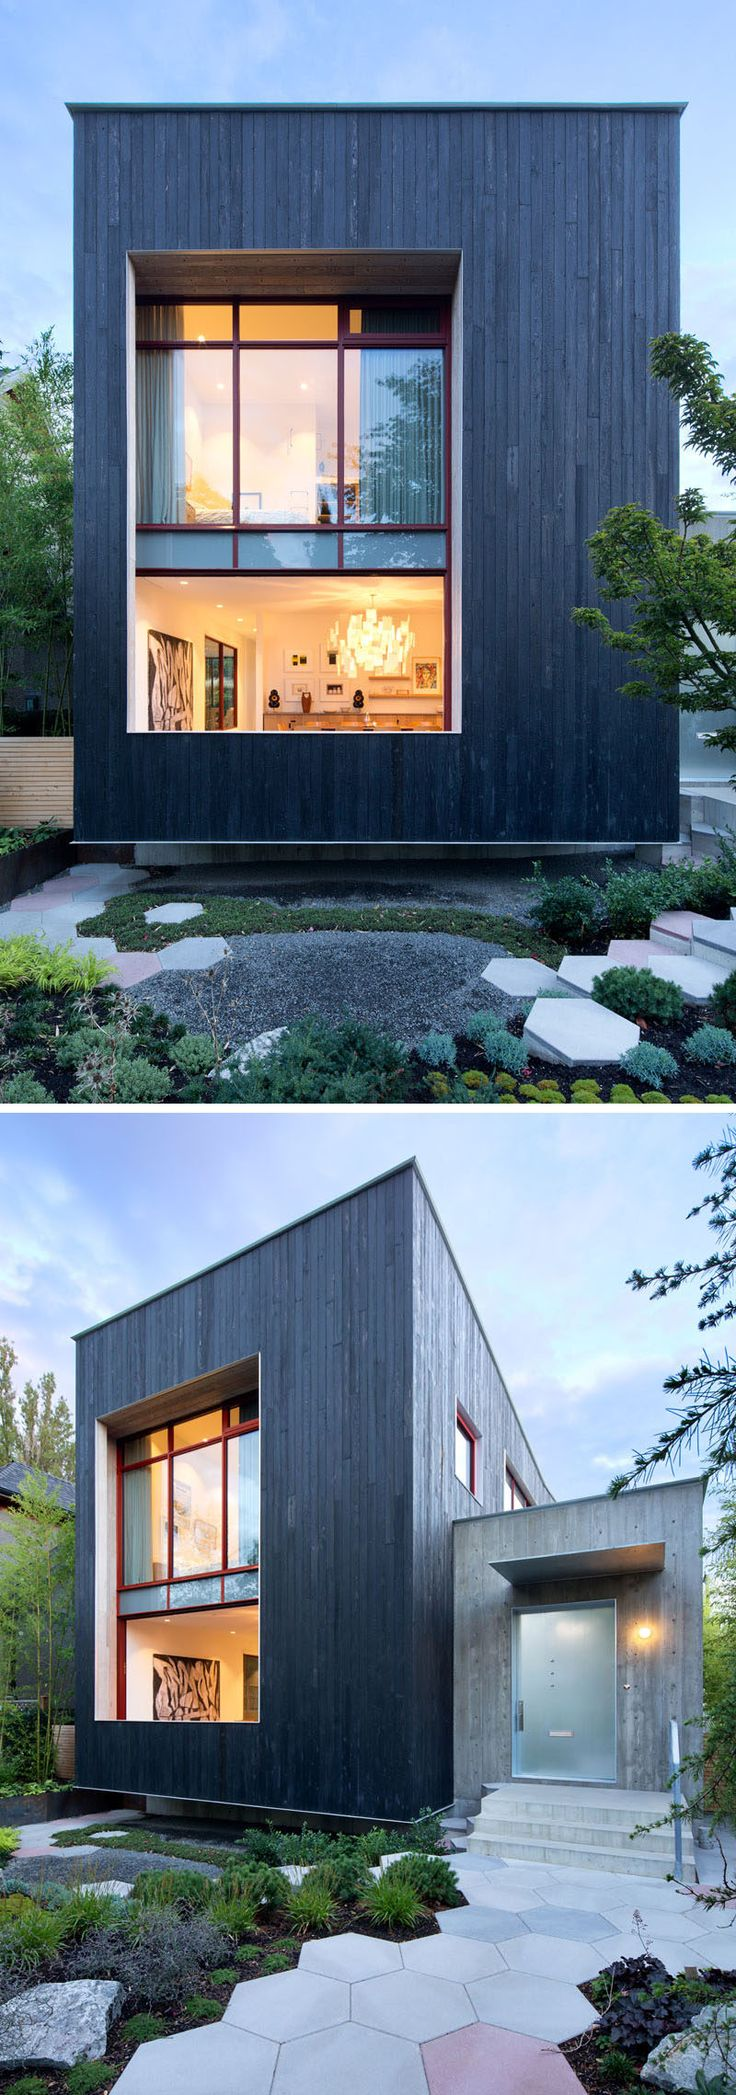 83 best Architektur images on Pinterest | Small homes, Small houses ...